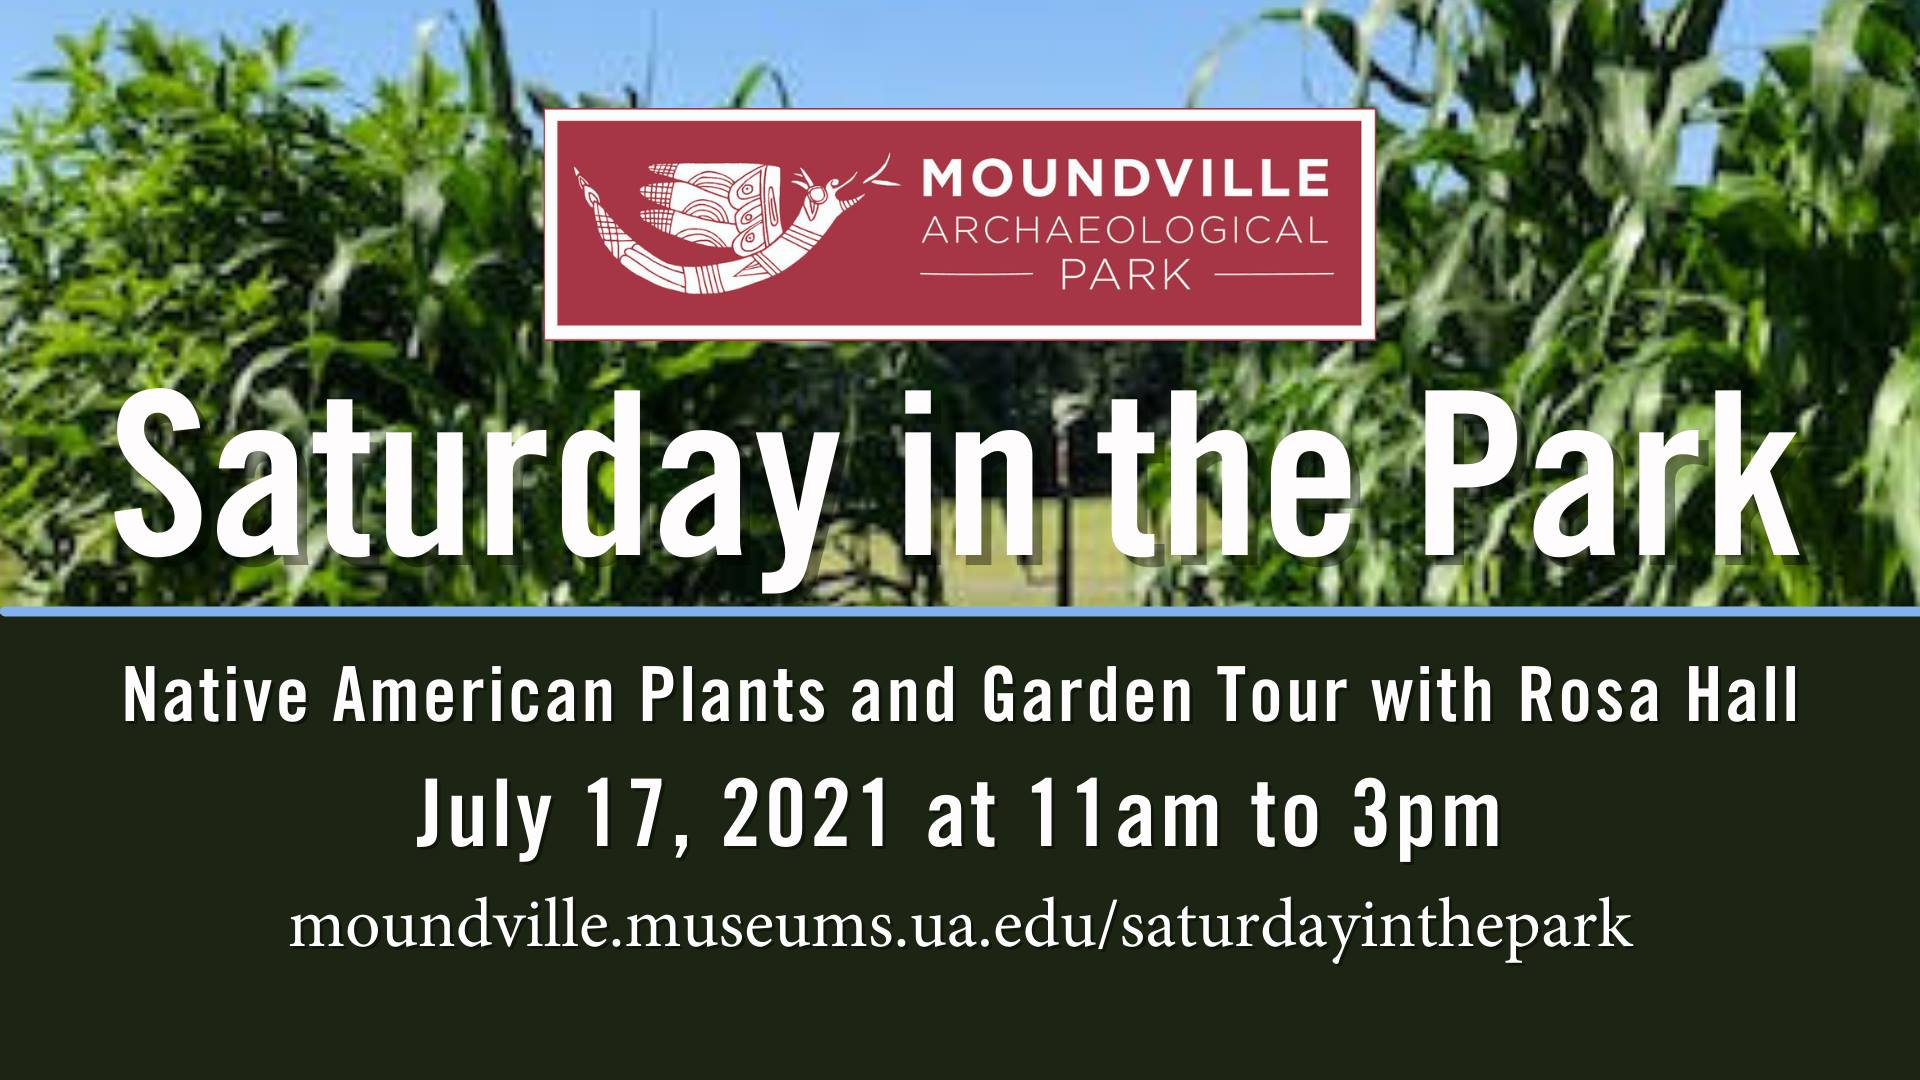 Saturday in the Park: Native American Plants and Garden Tour with Rosa Hall